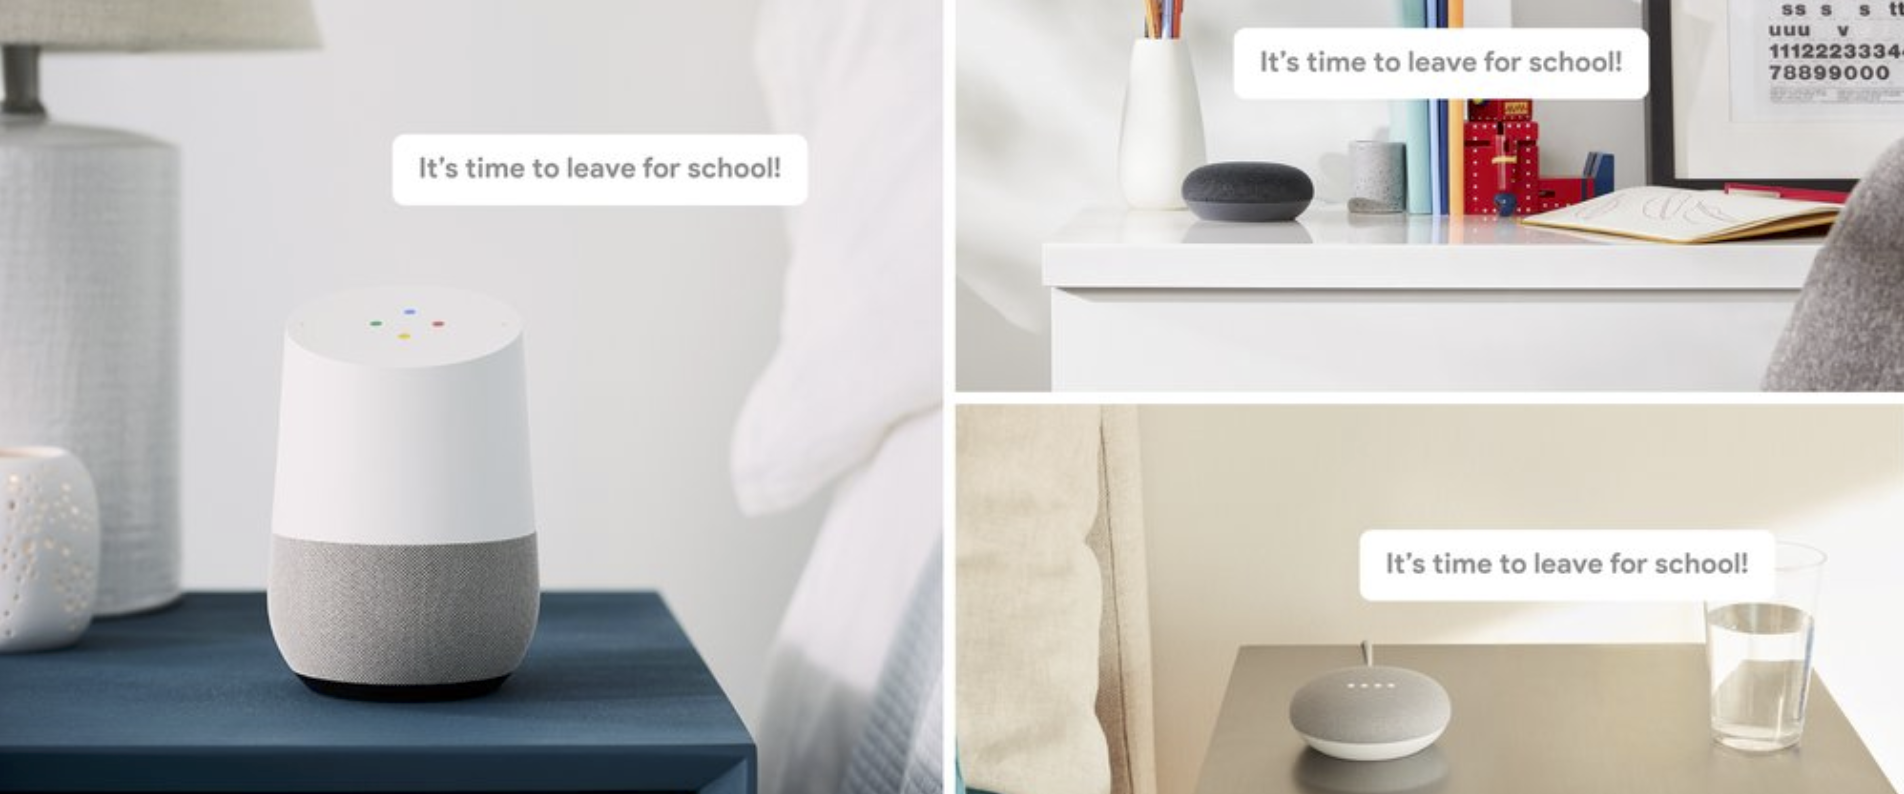 Broadcast for Google Home is rolling out now, allowing you to talk to everyone in the house